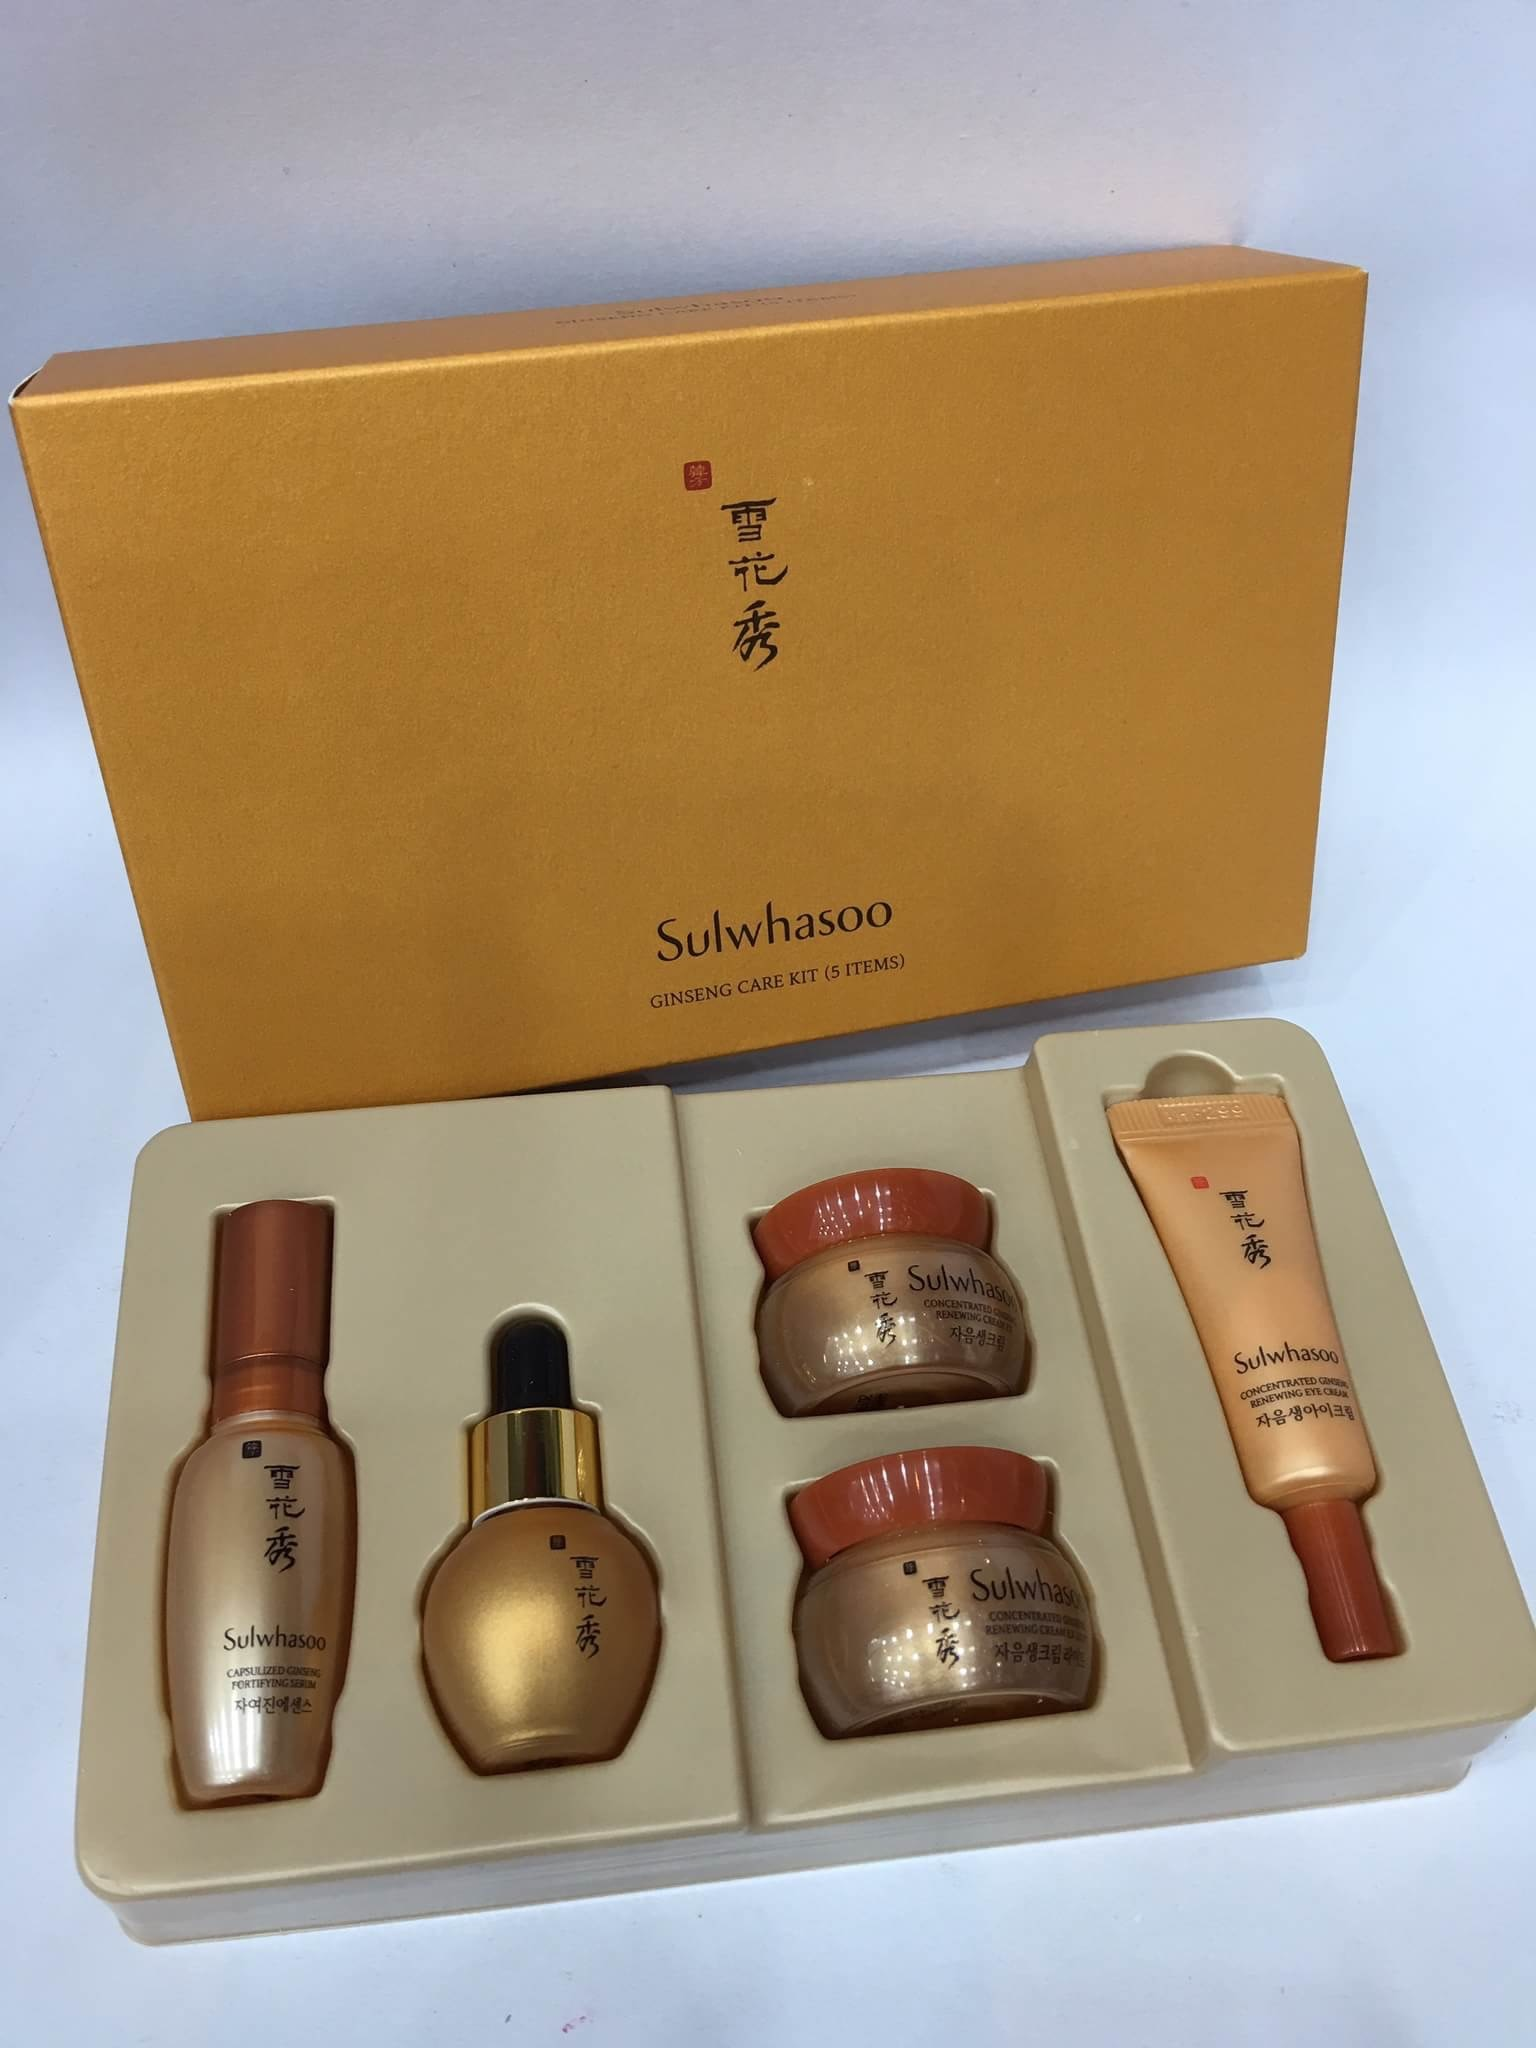 #Sulwhasoo Ginseng Care Kit (5 Item)